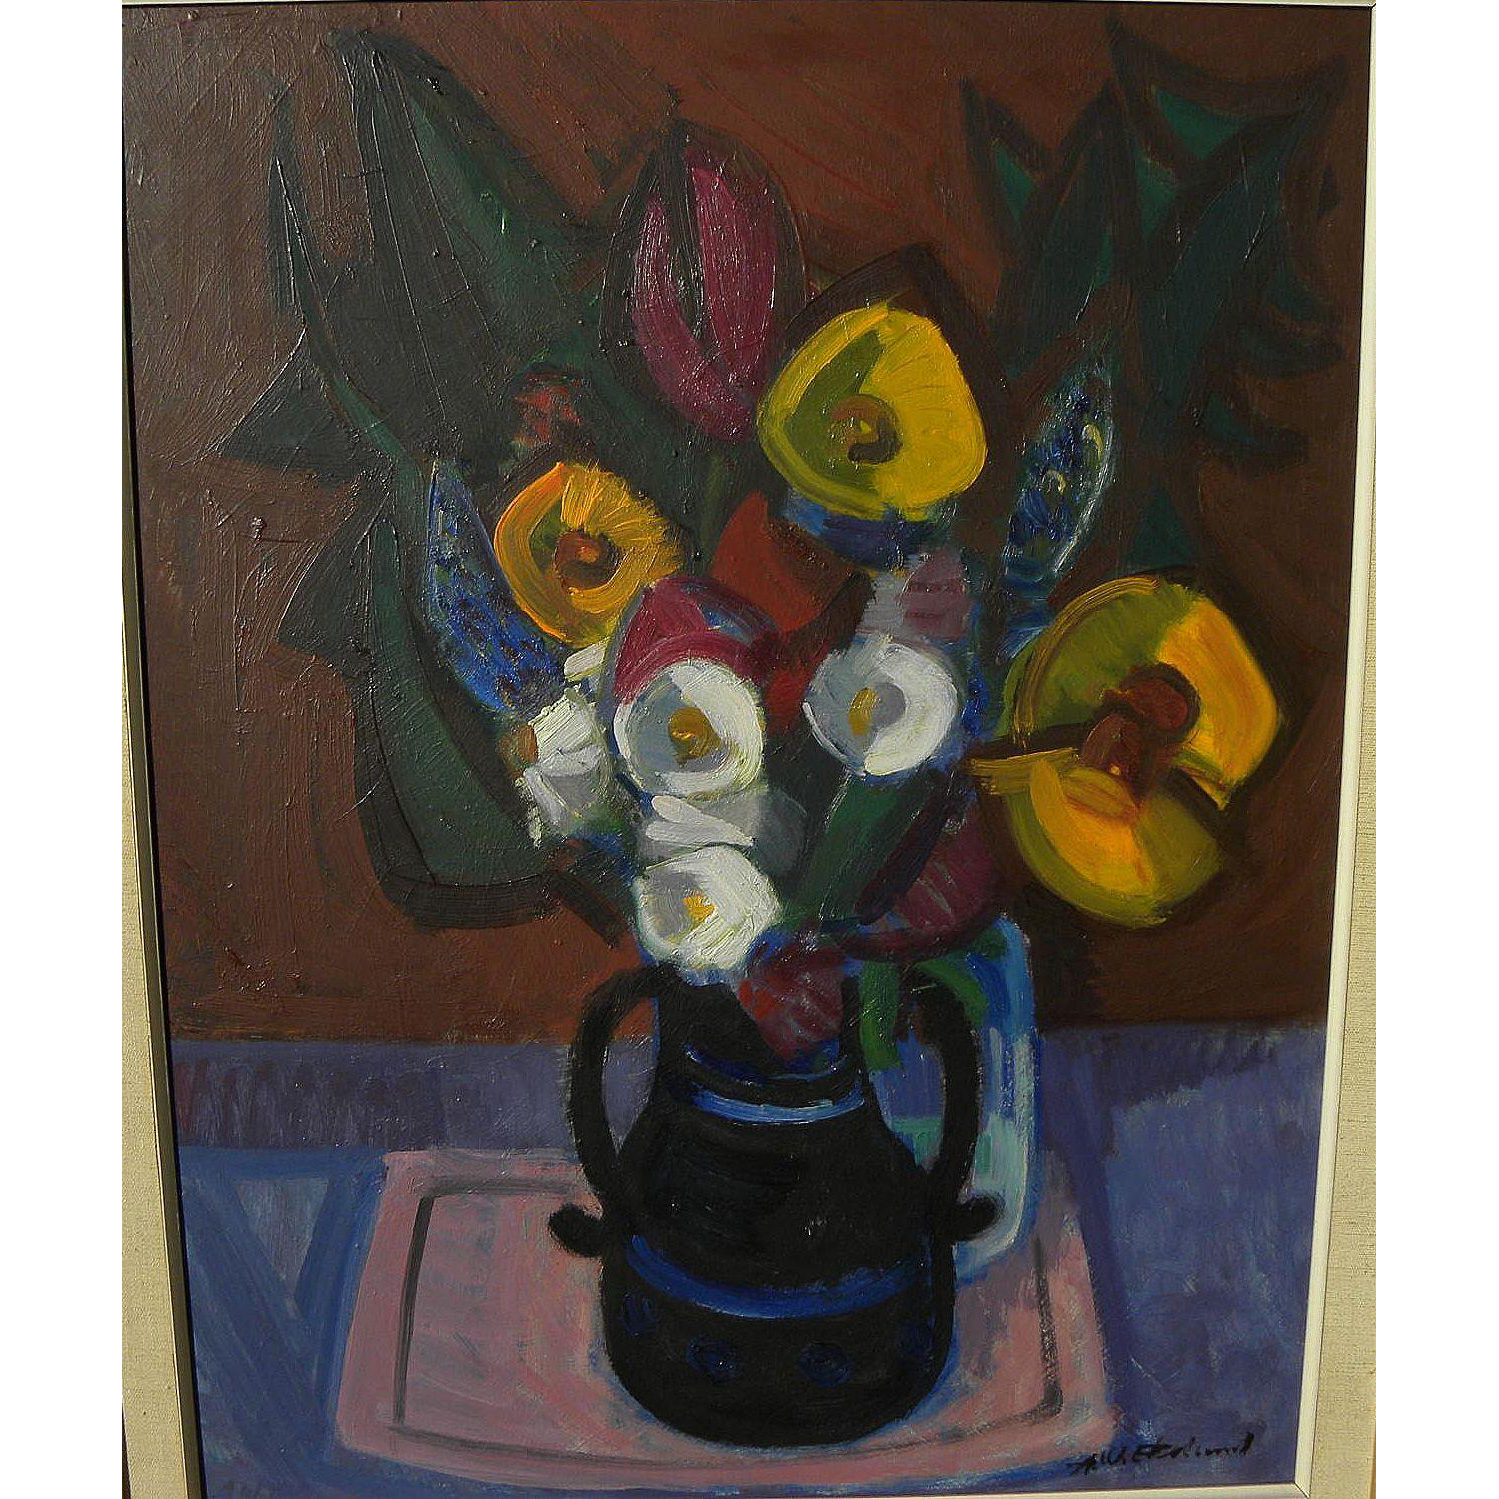 AXEL EKELUND (1919-) modernist still life painting by listed Swedish artist